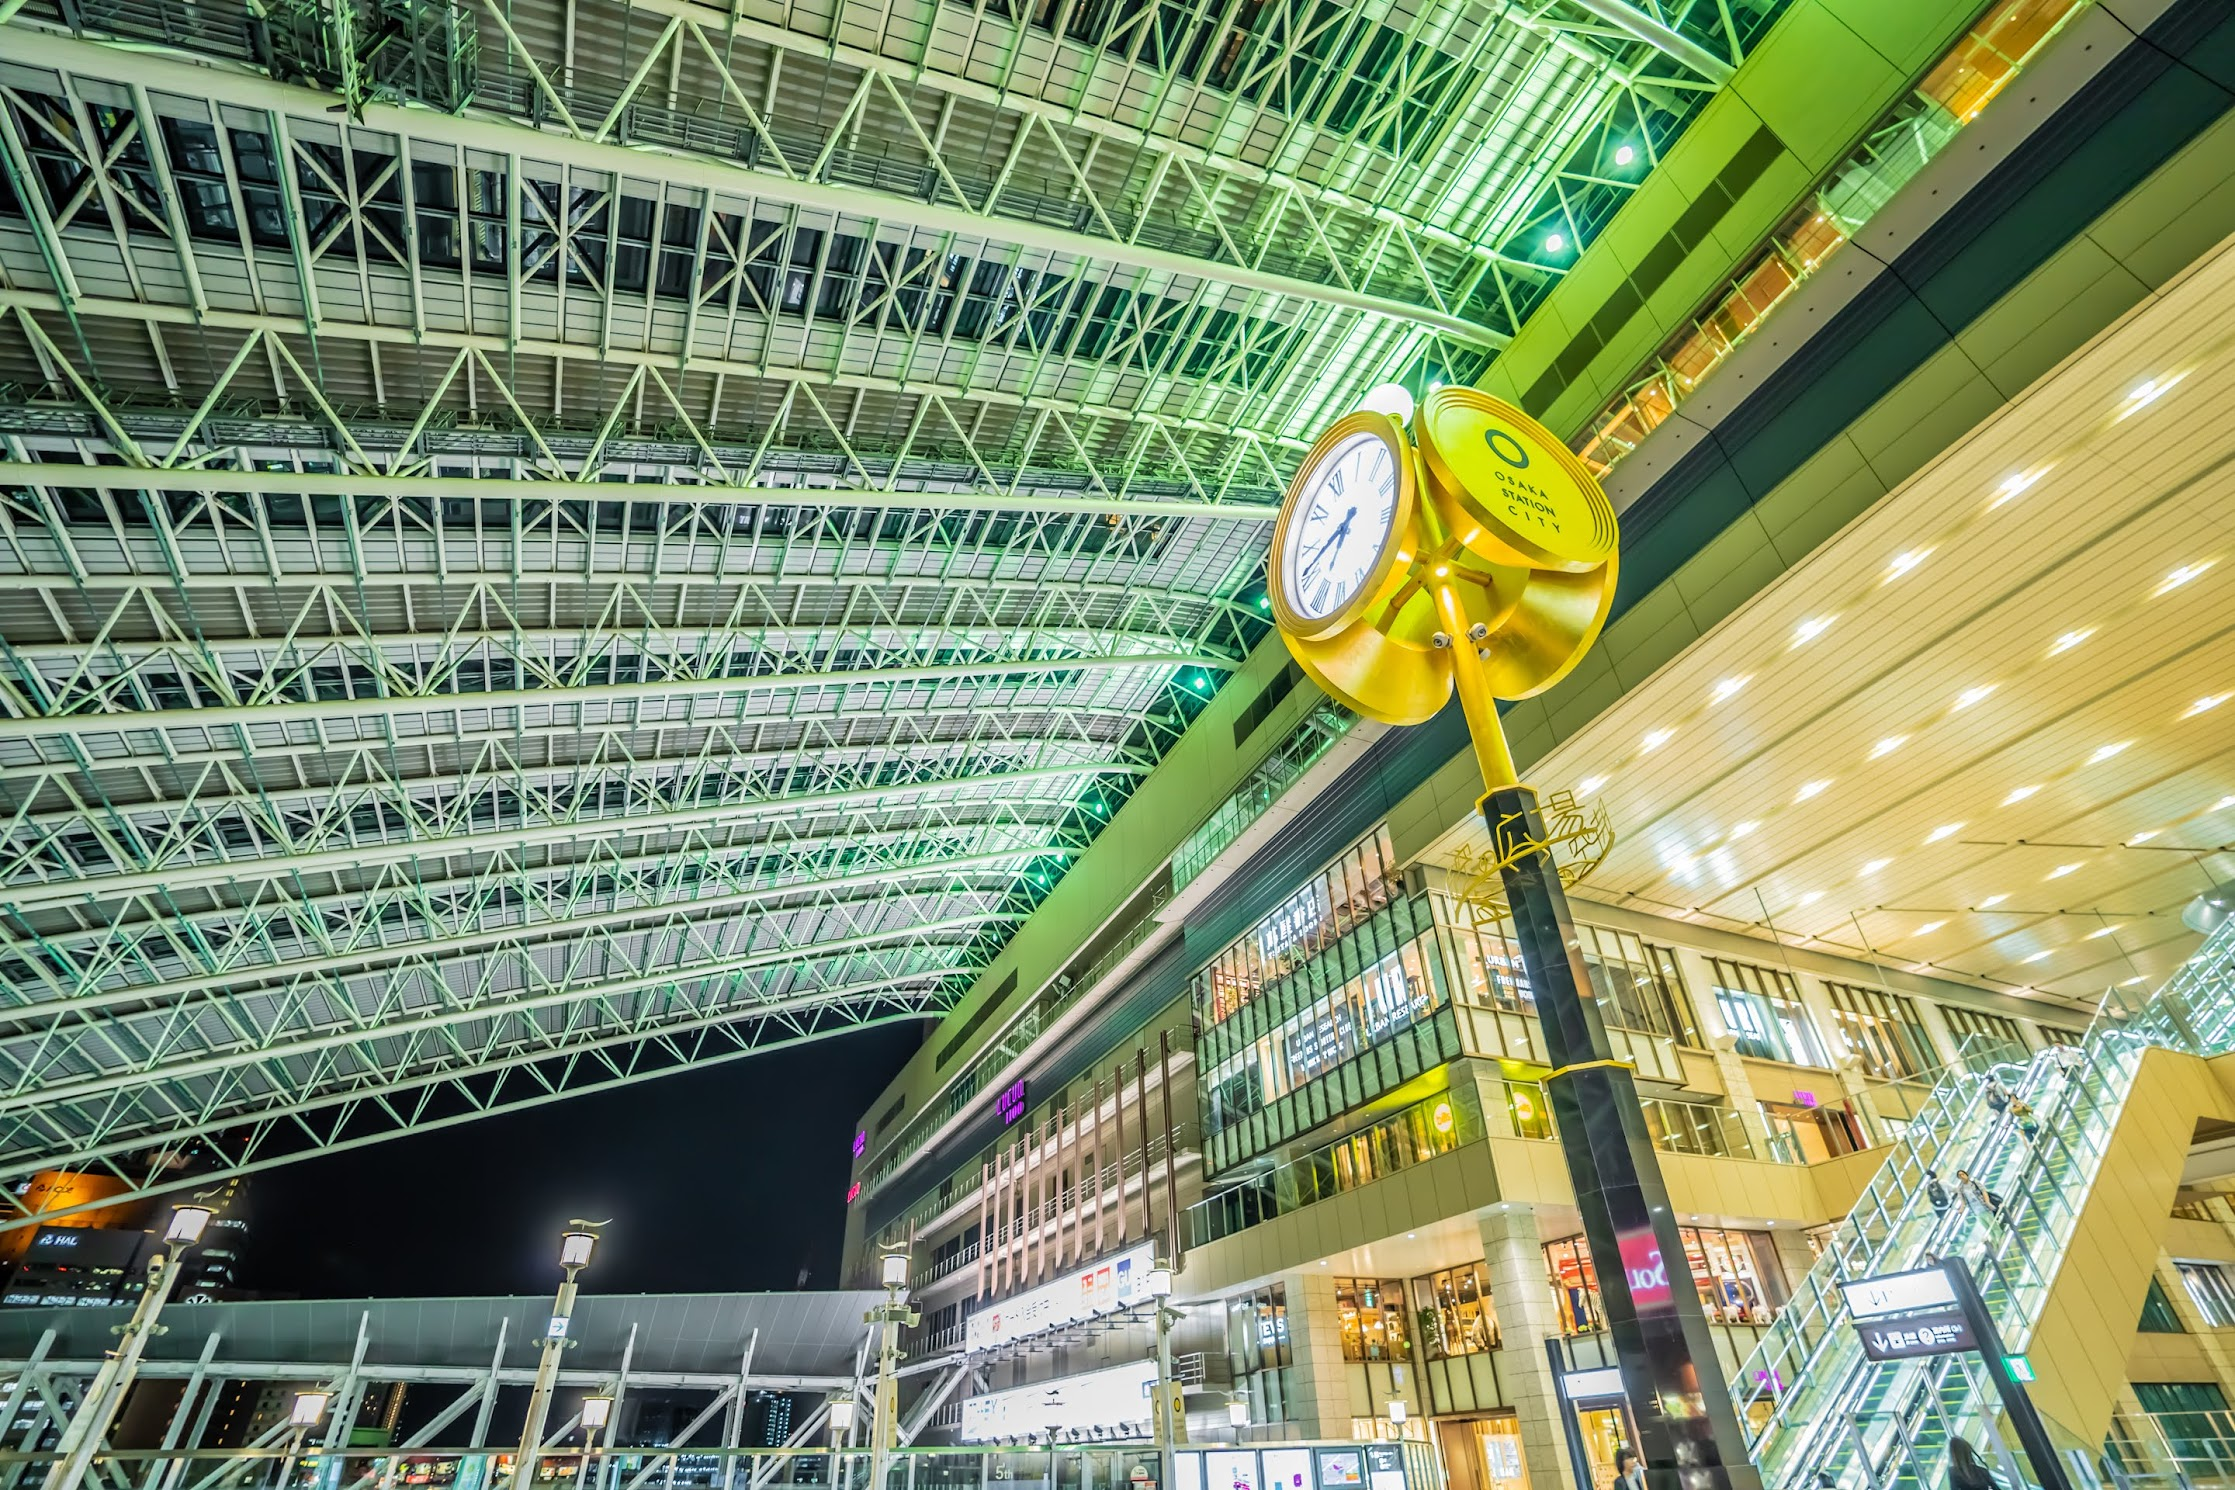 Osaka station Toki-no-hiroba Plaza6